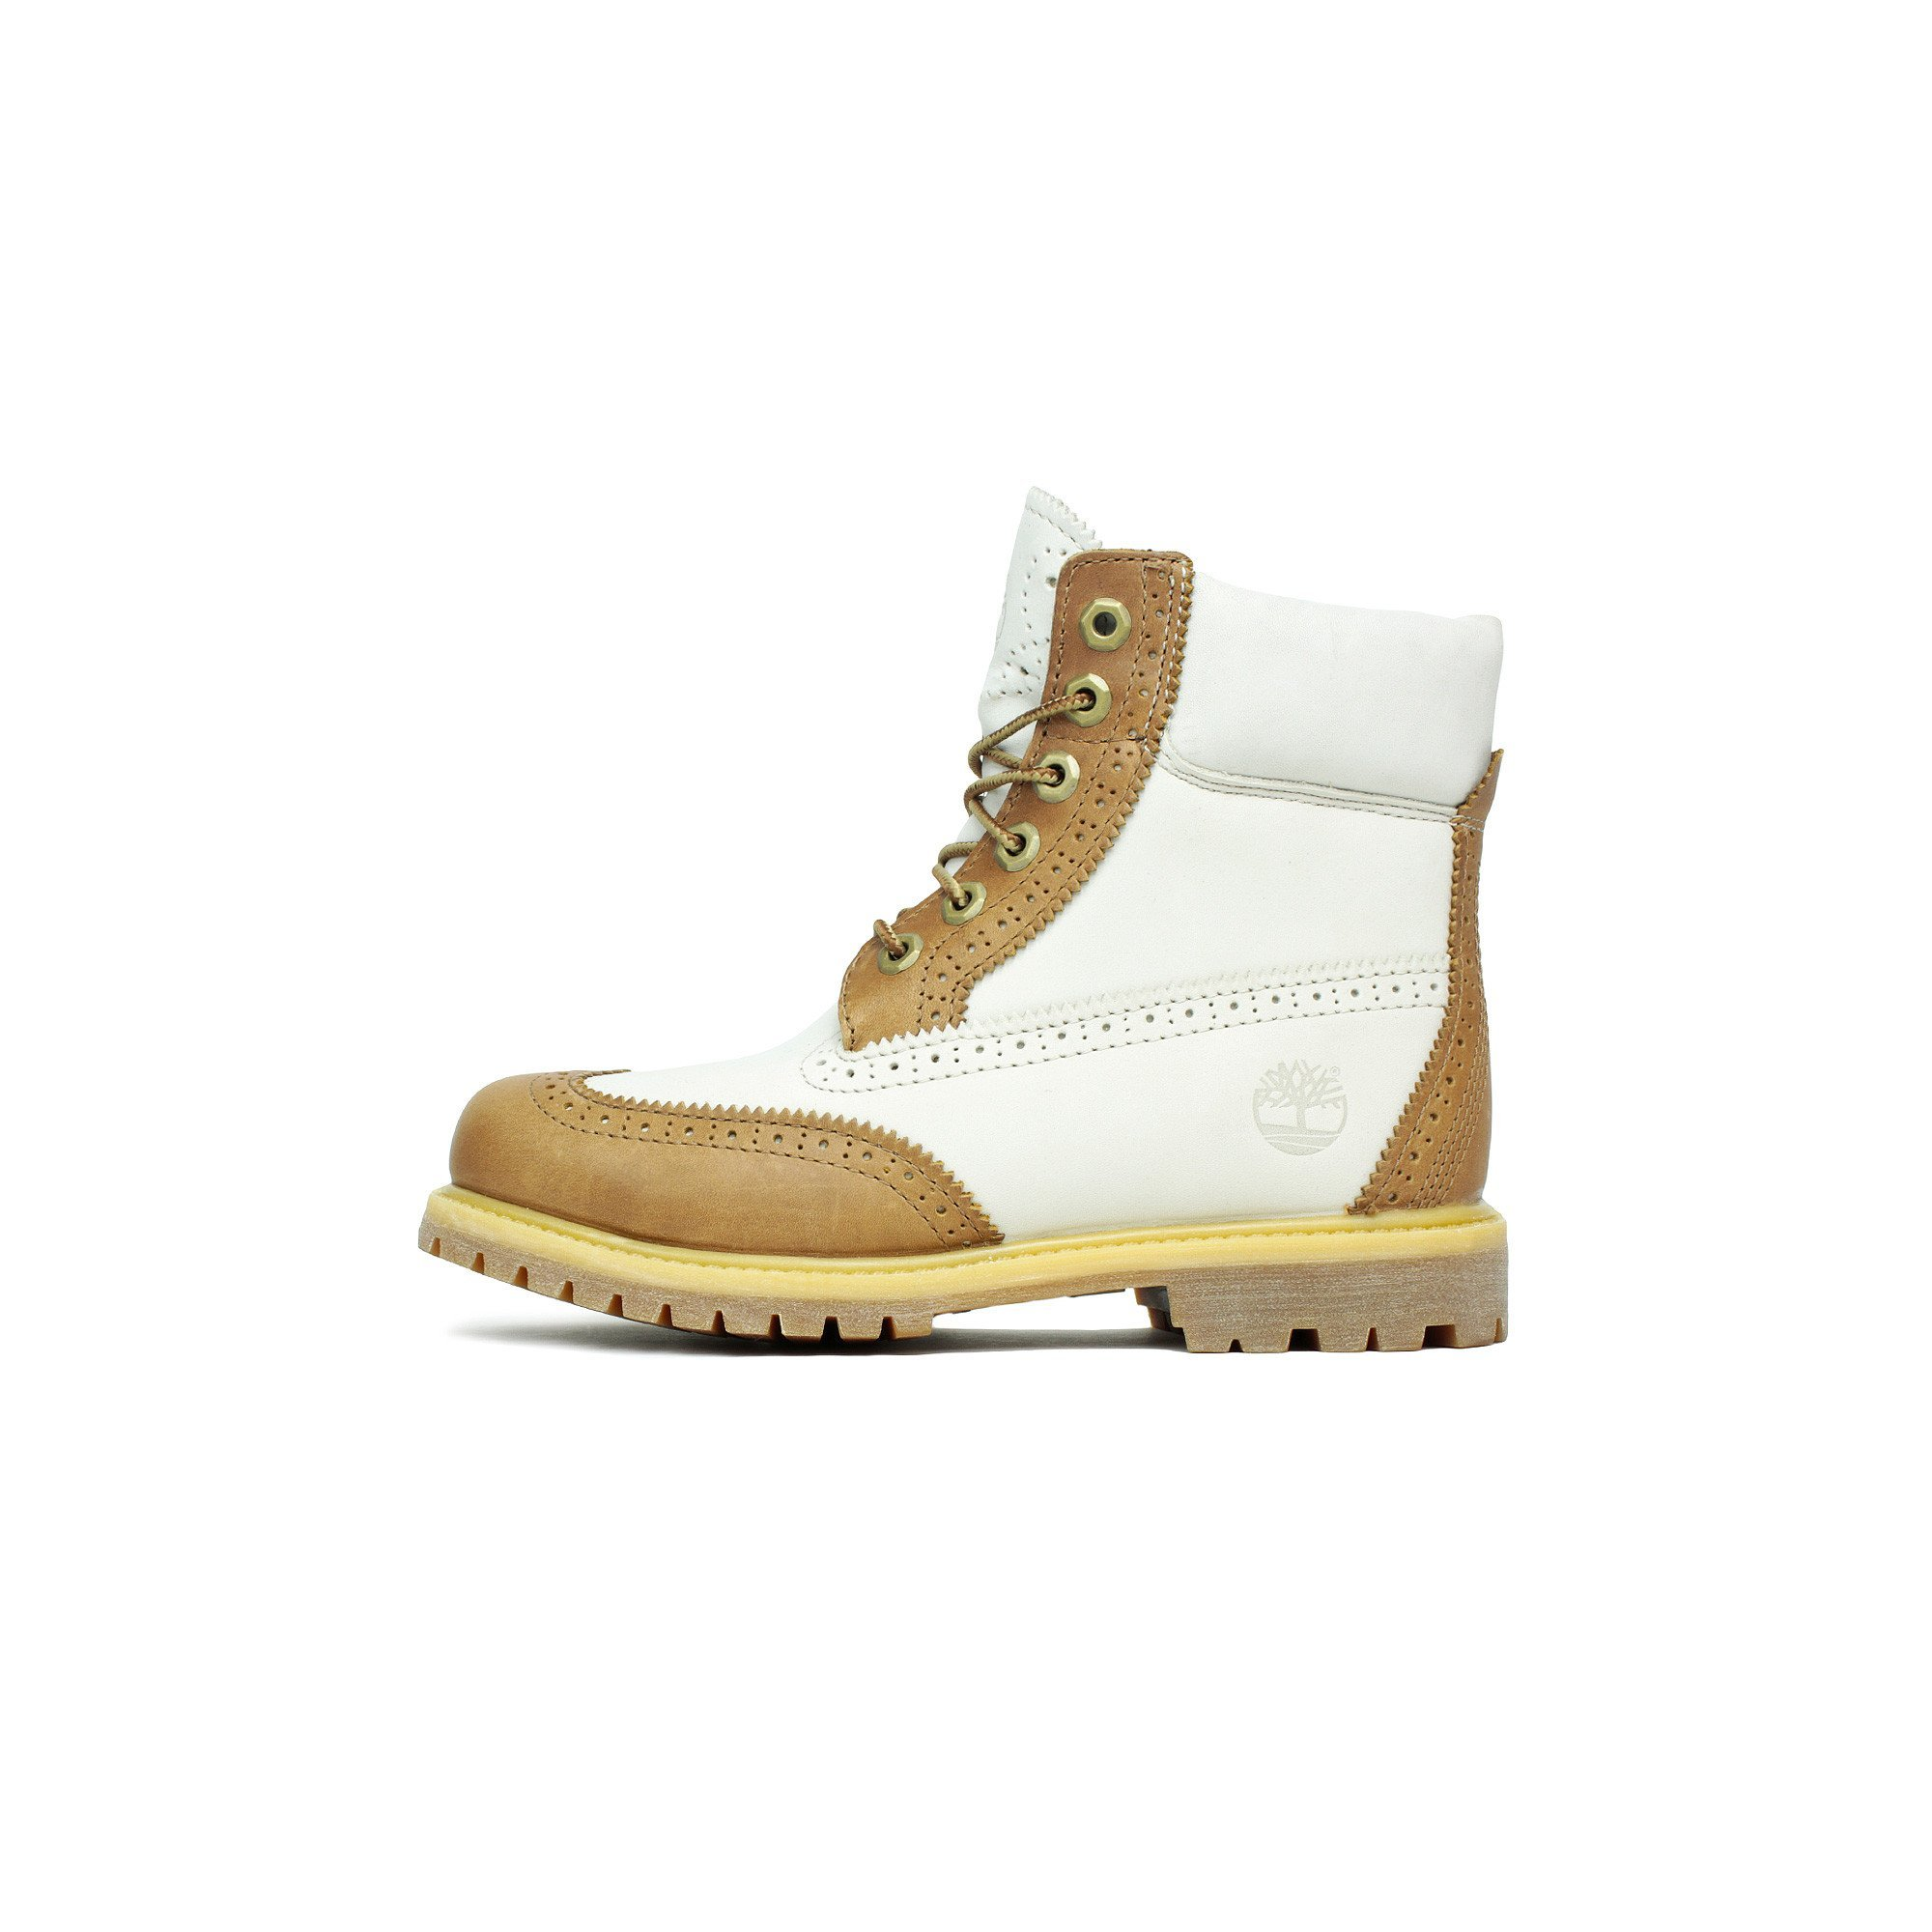 Womens Timberland 6 Inch Premium Boot Brogue Tan White TB0A1G6T by